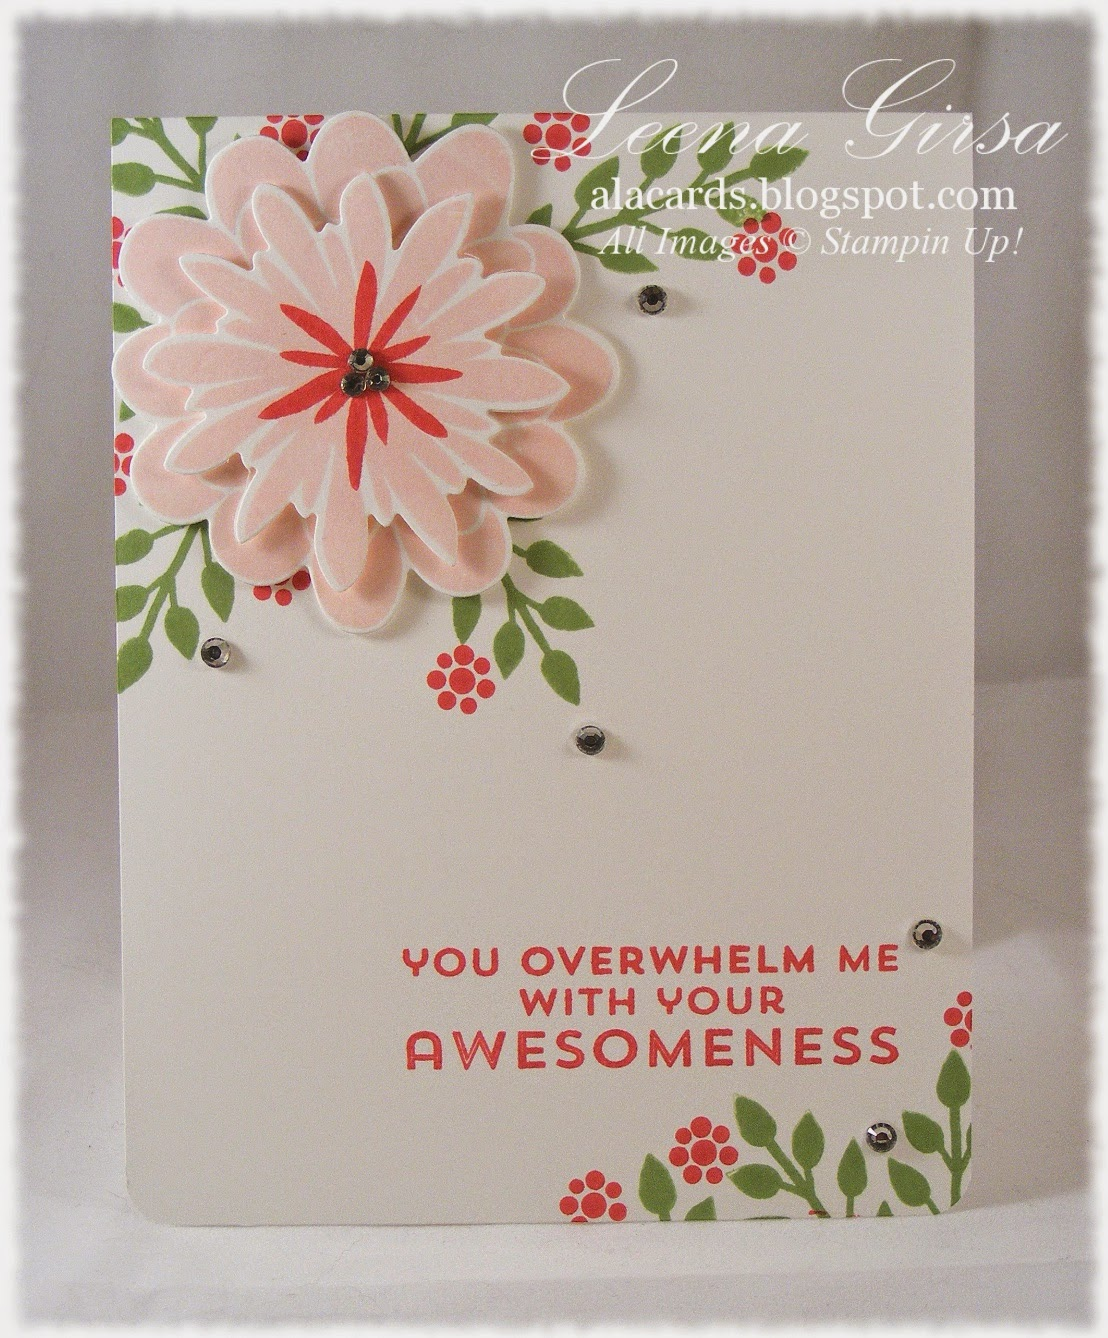 A La Cards Flower Patch Awesomeness and new product announcements